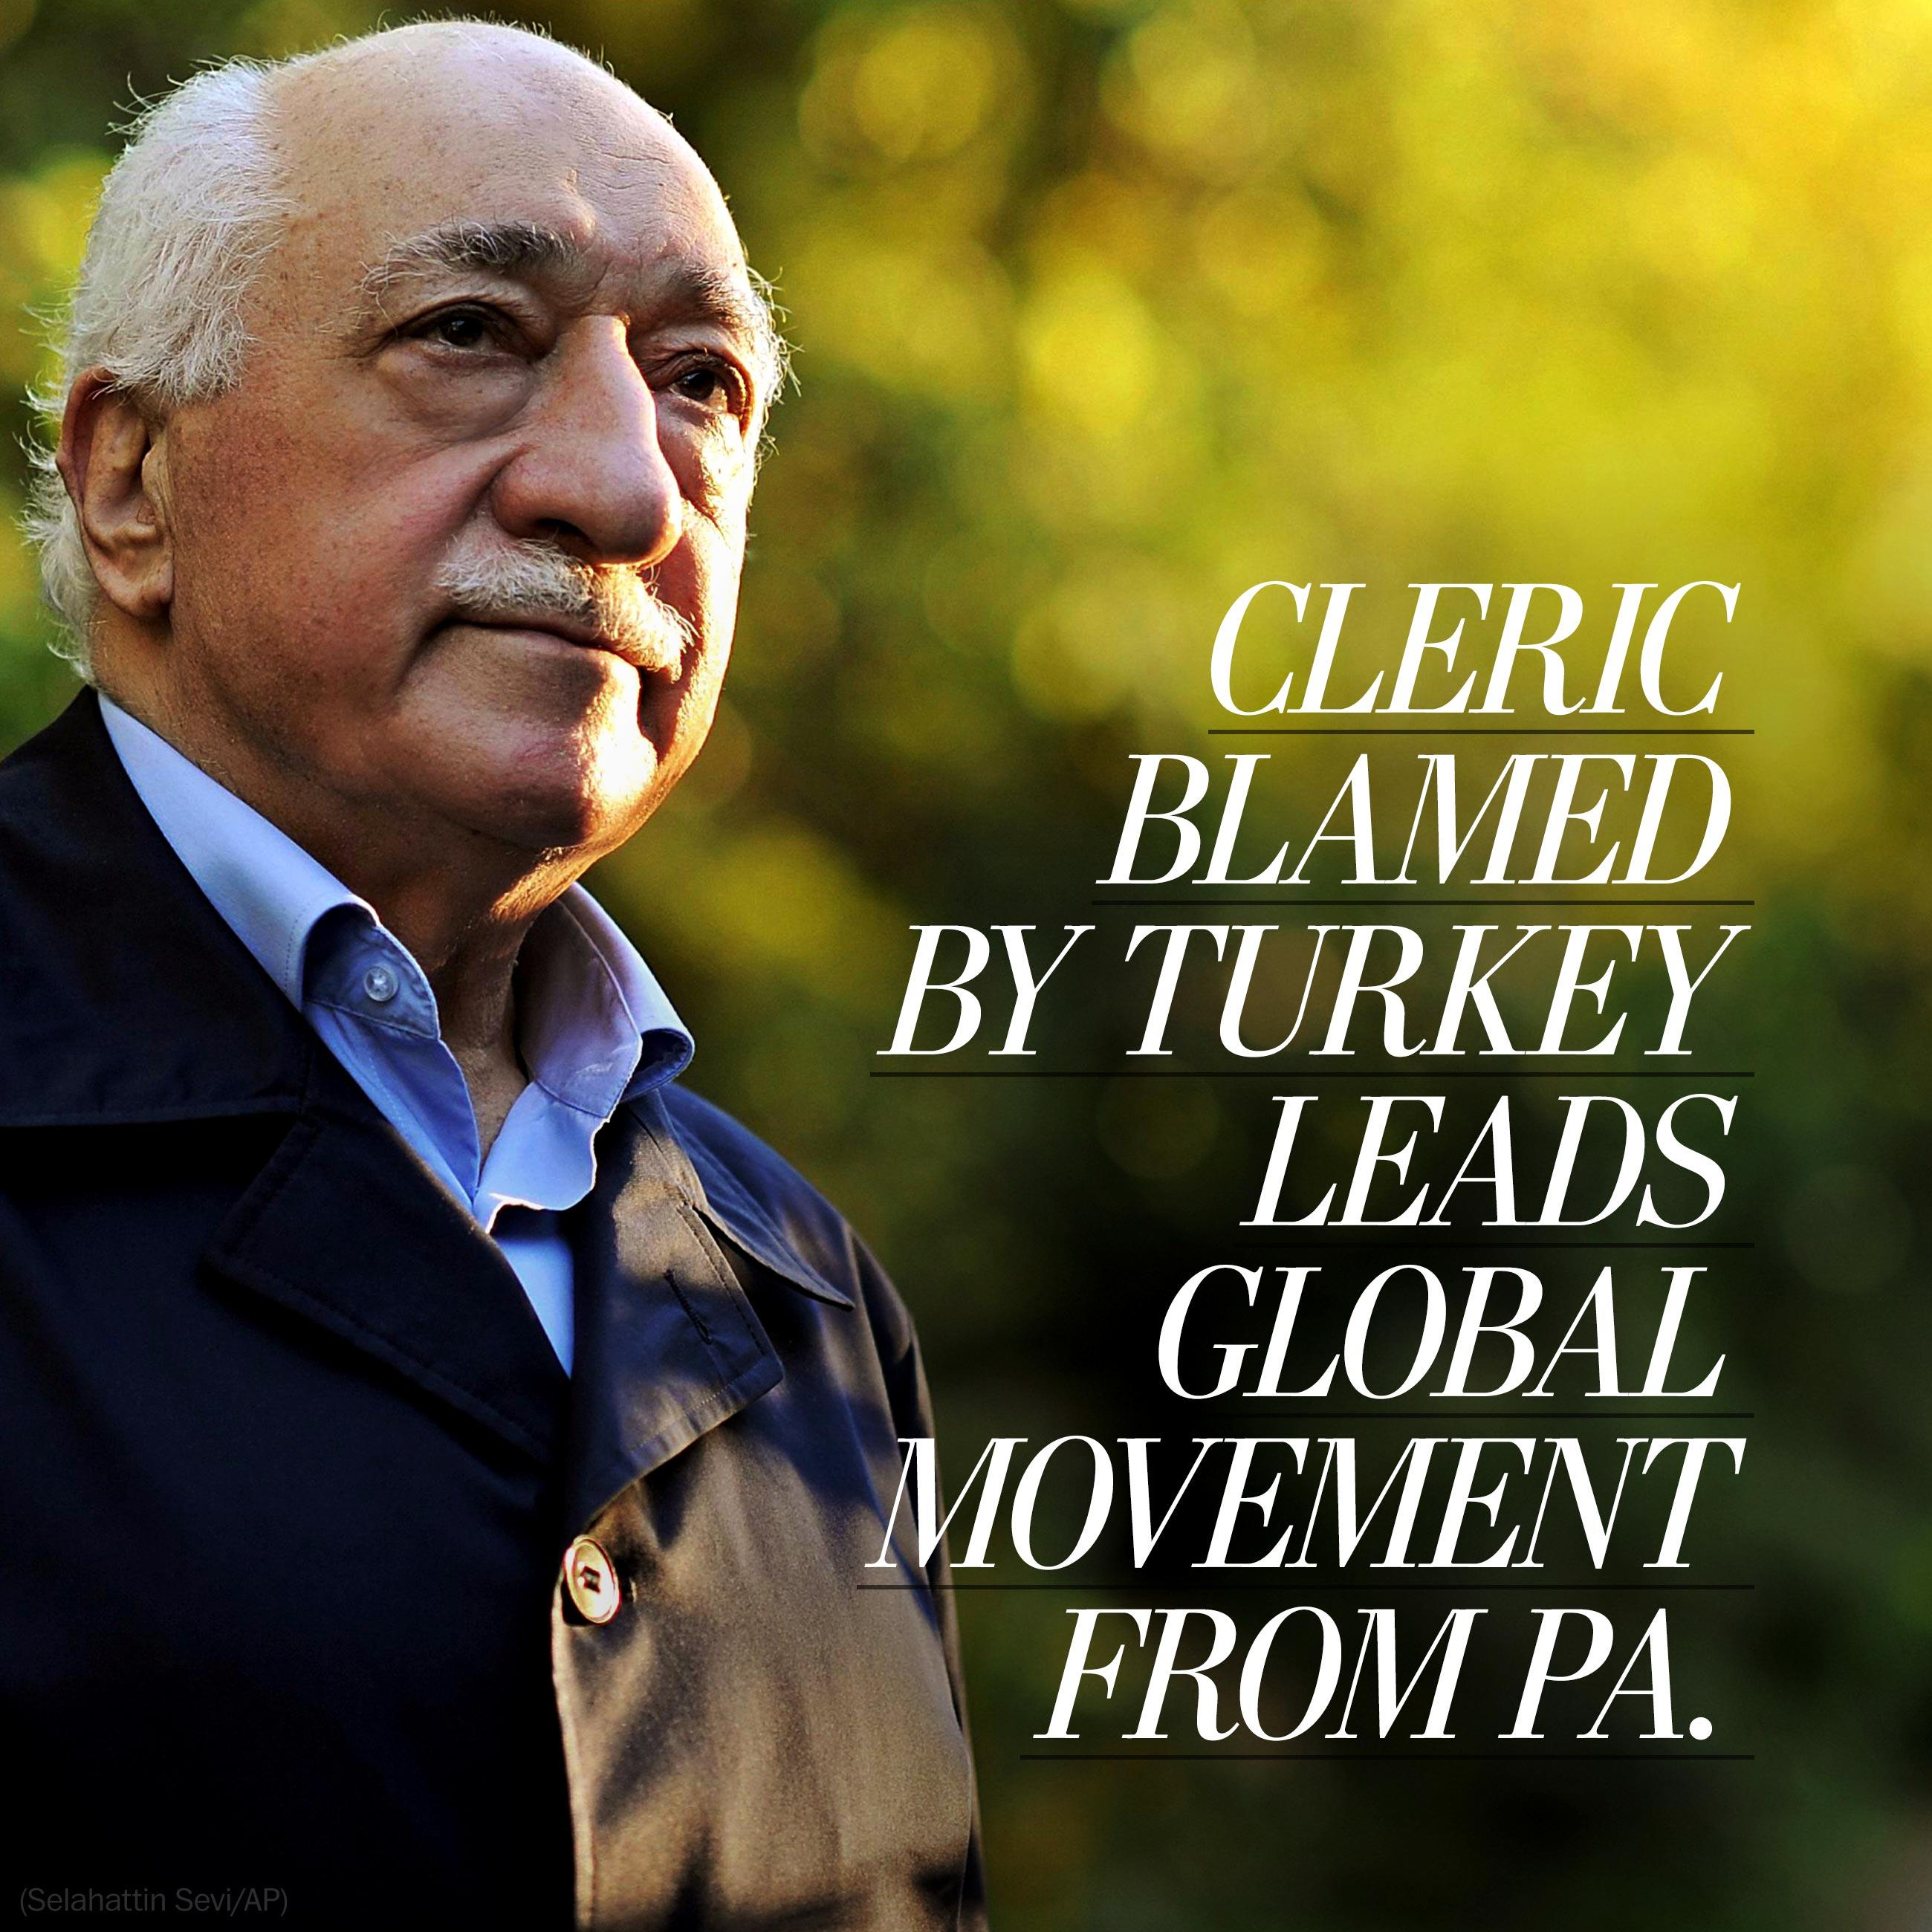 The cleric blamed by Turkey leads a global movement from the Poconos